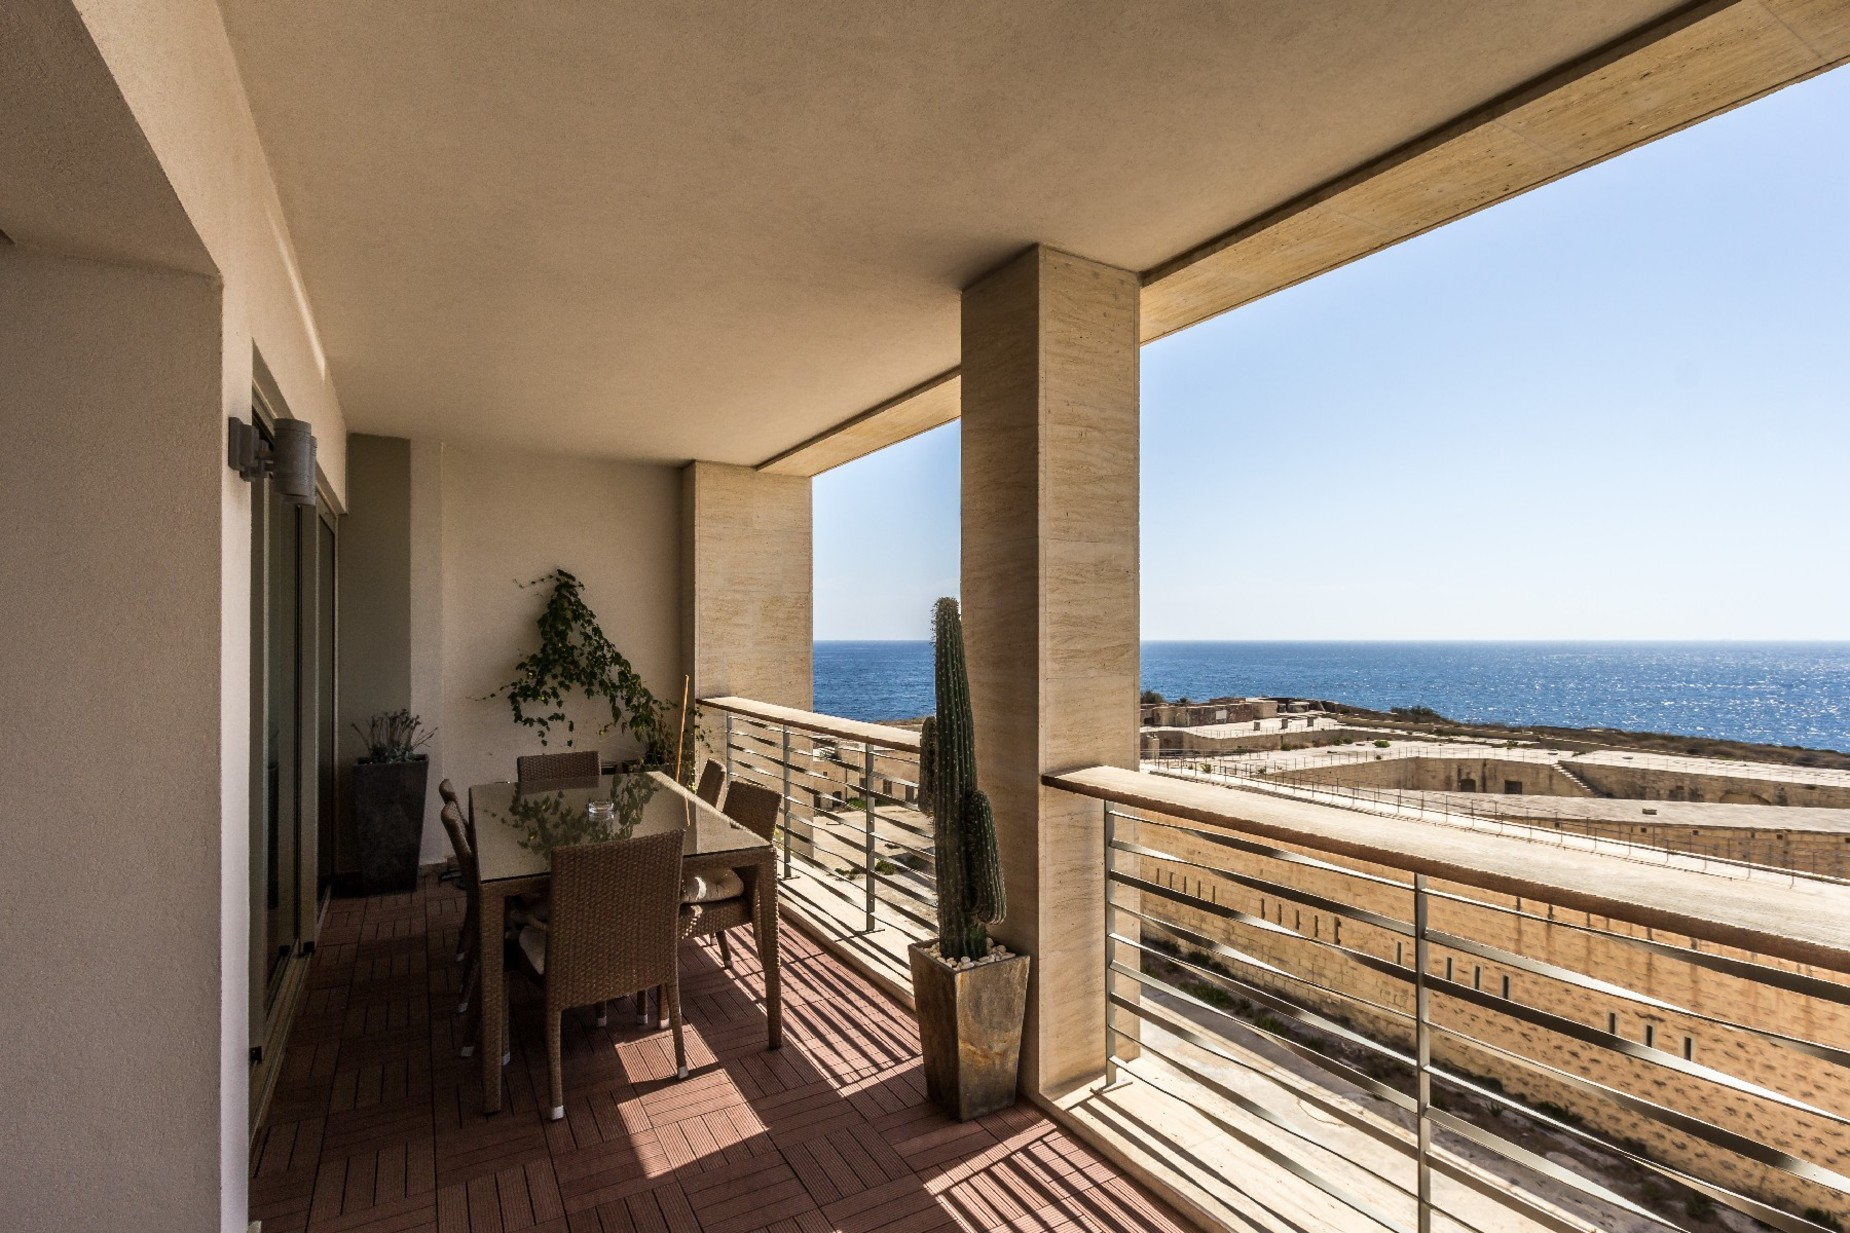 4 bed Apartment For Sale in Sliema, Sliema - thumb 3